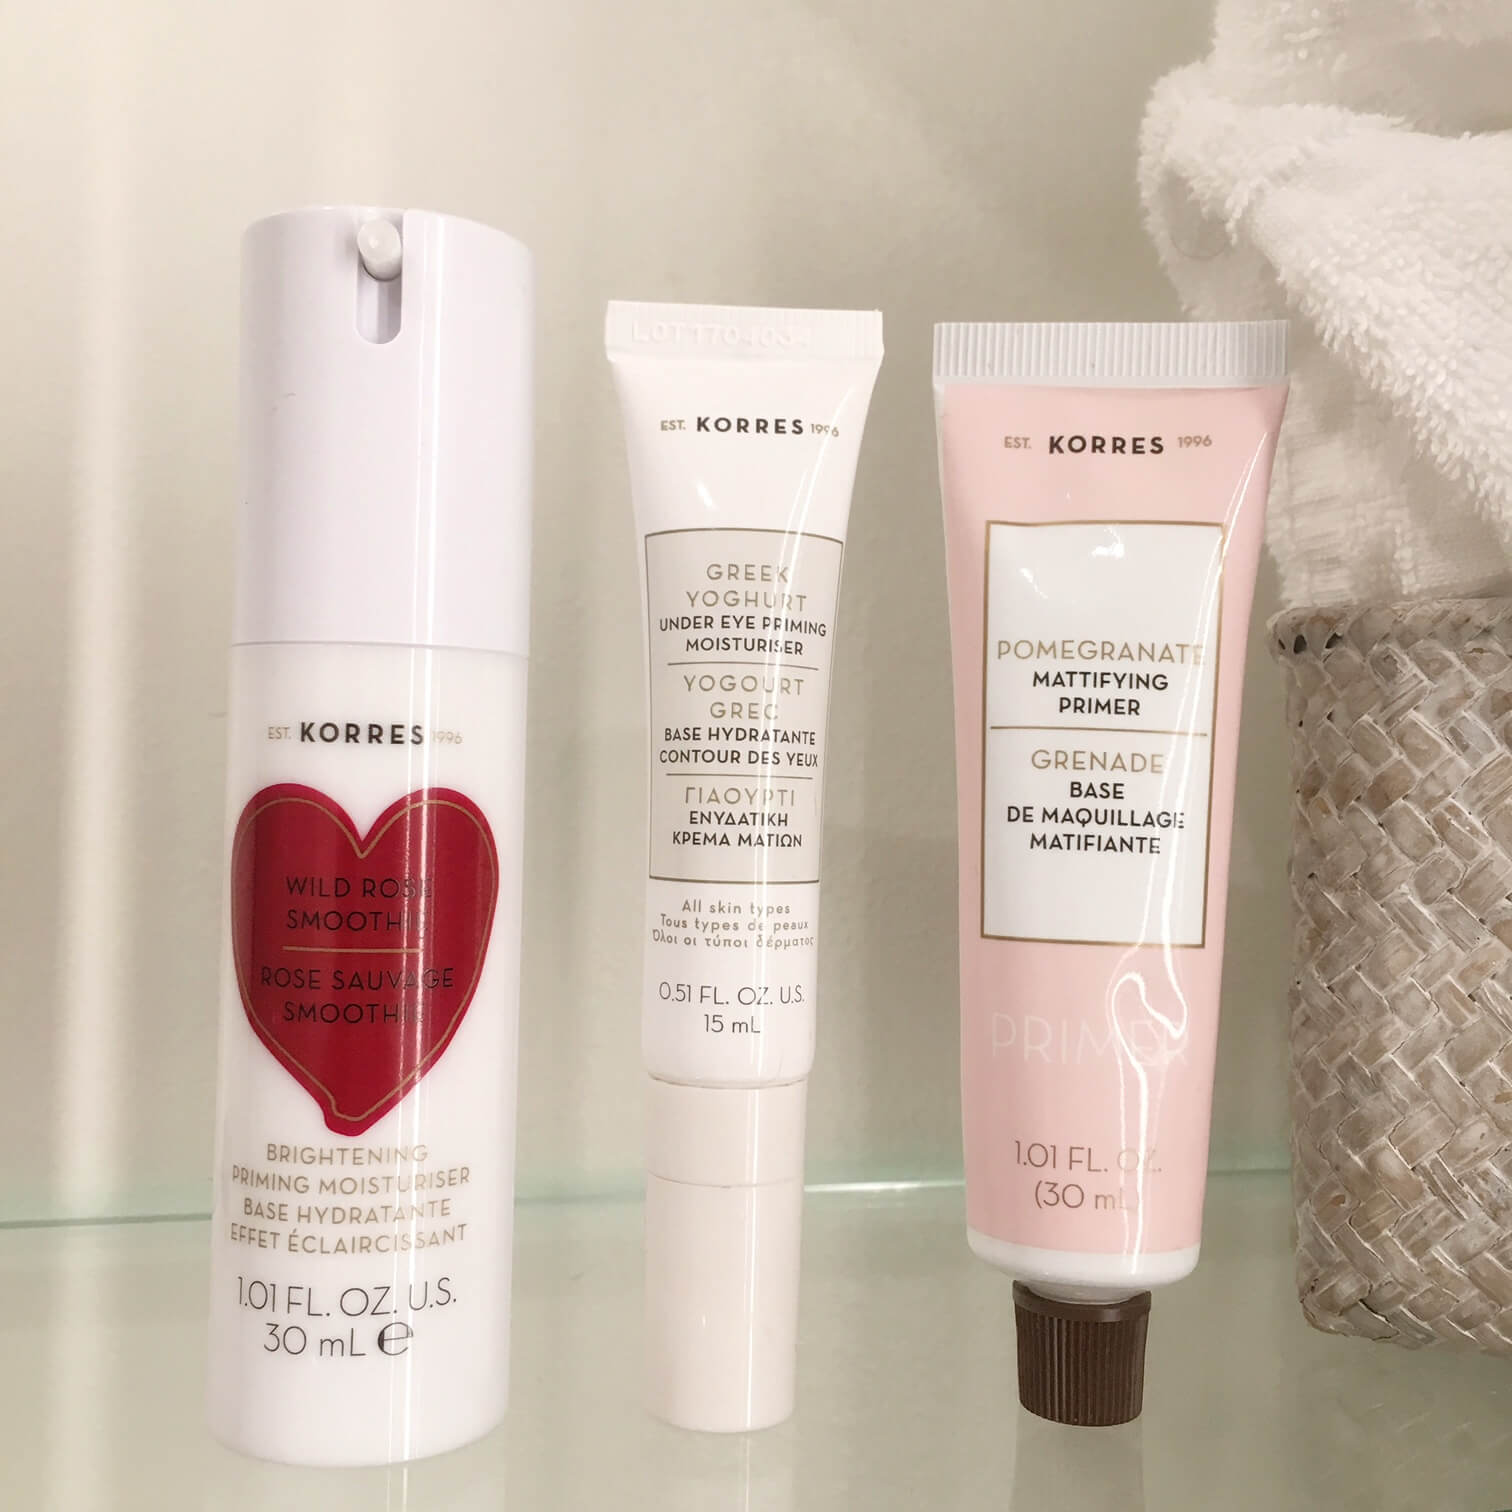 3 beauty products in a bathroom